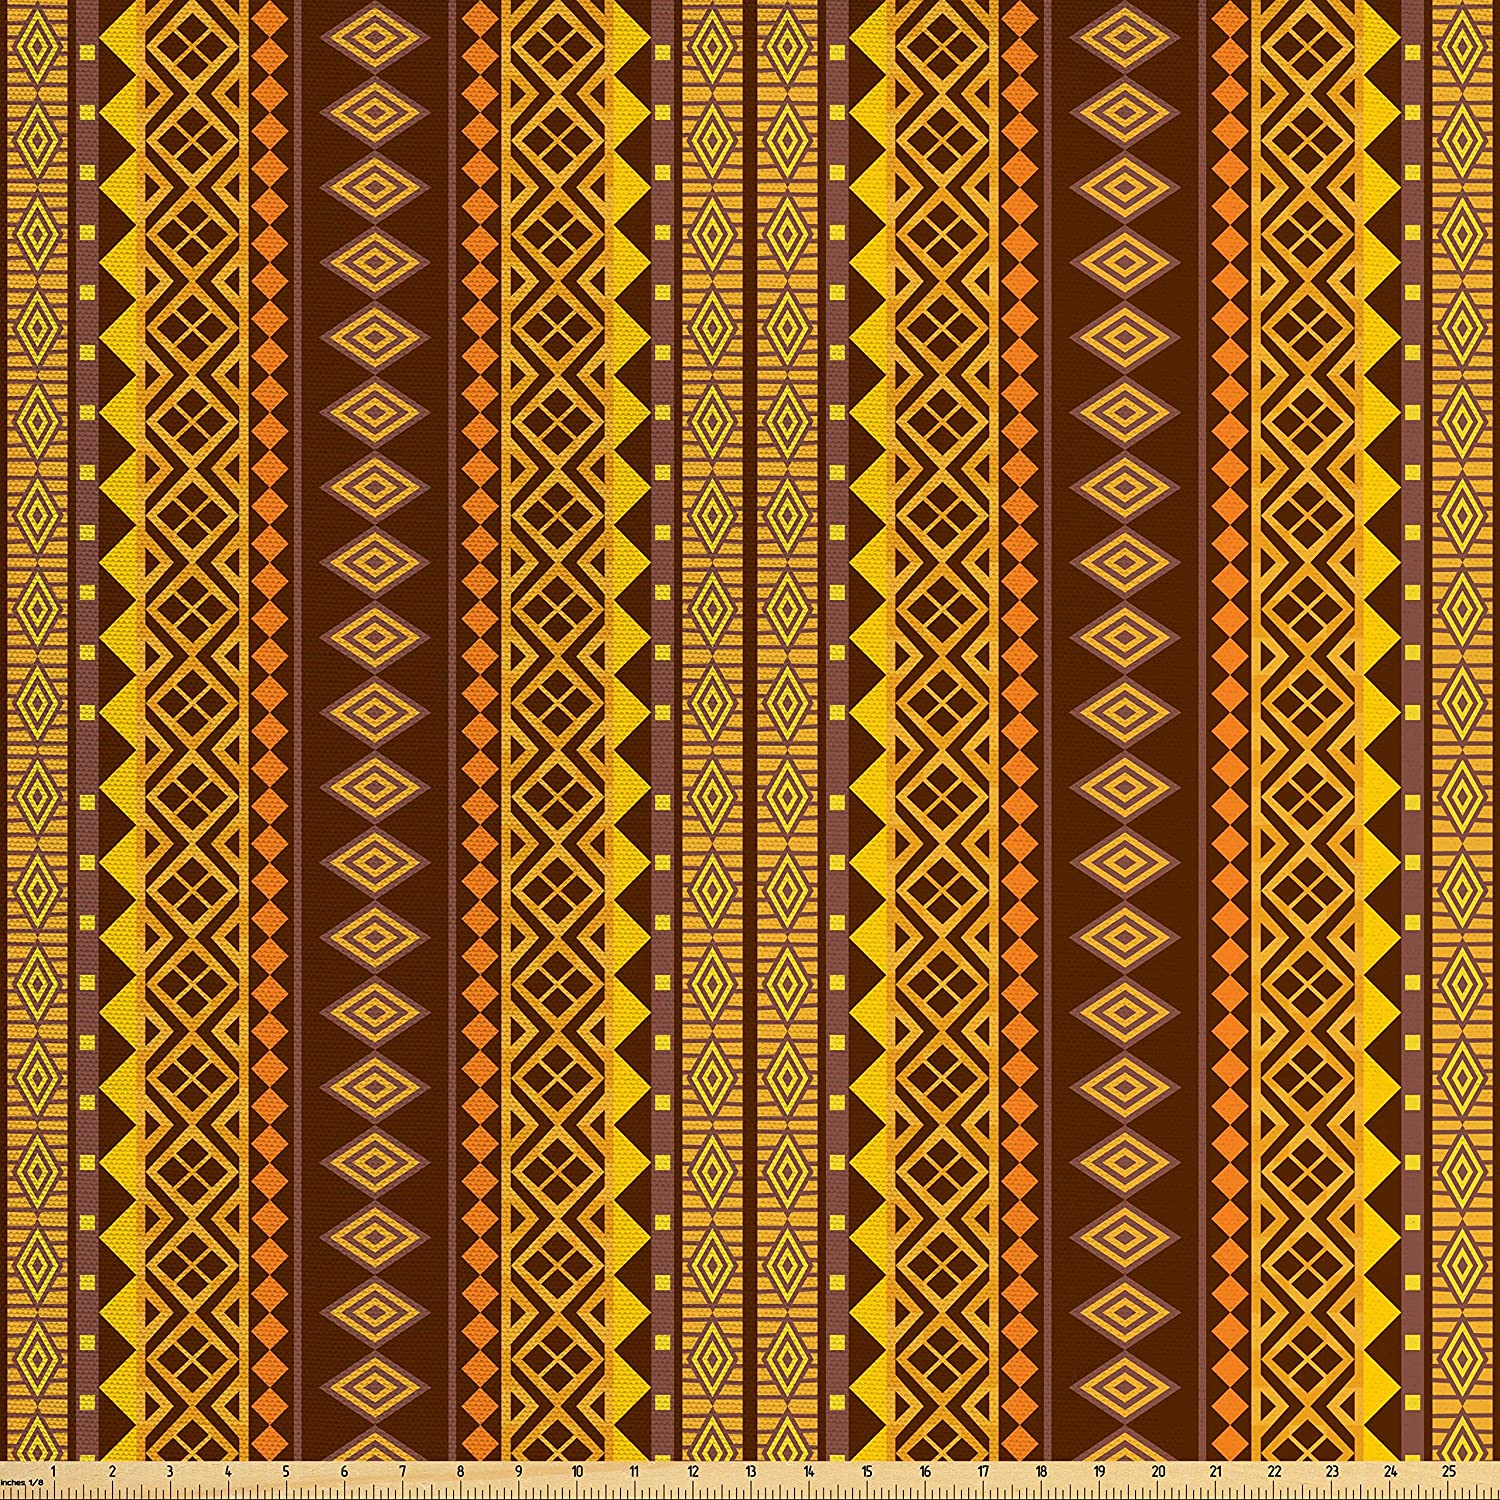 Lunarable Yellow and Brown Fabric by The Yard, Folk Hippie Motifs Triangles Geometric Print, Decorative Fabric for Upholstery and Home Accents, Marigold Chestnut Brown